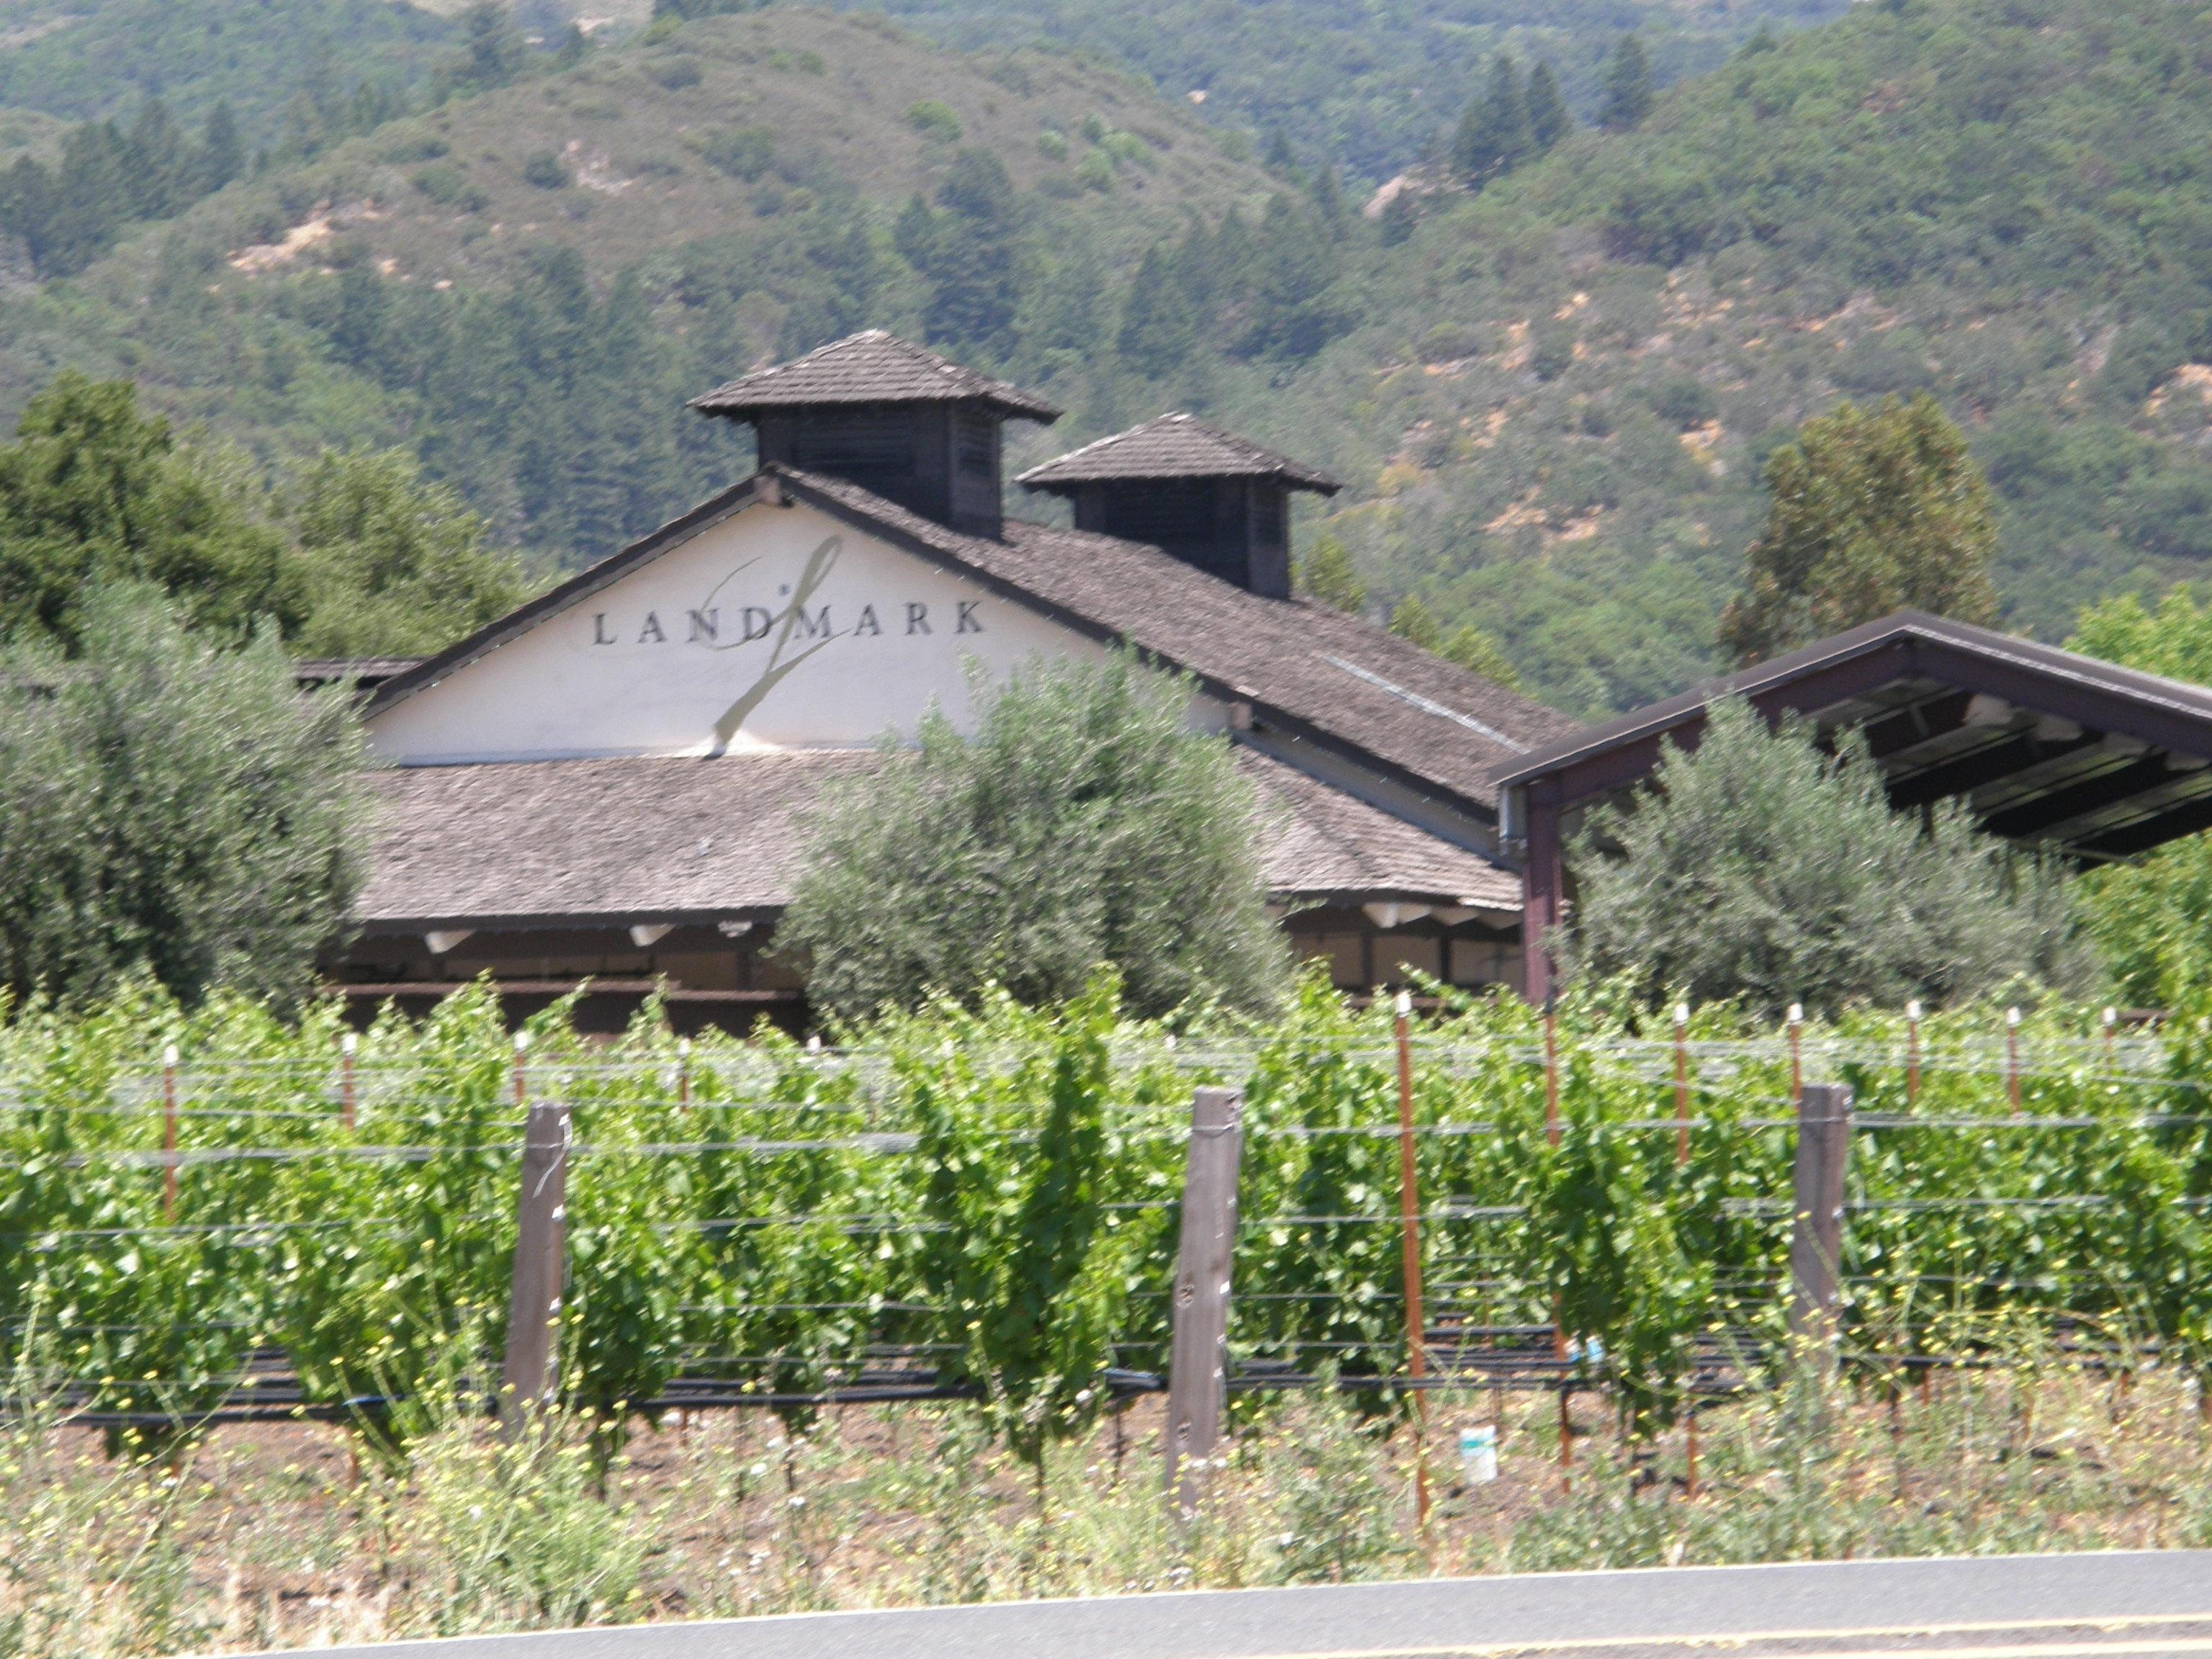 Landmark Vineyards